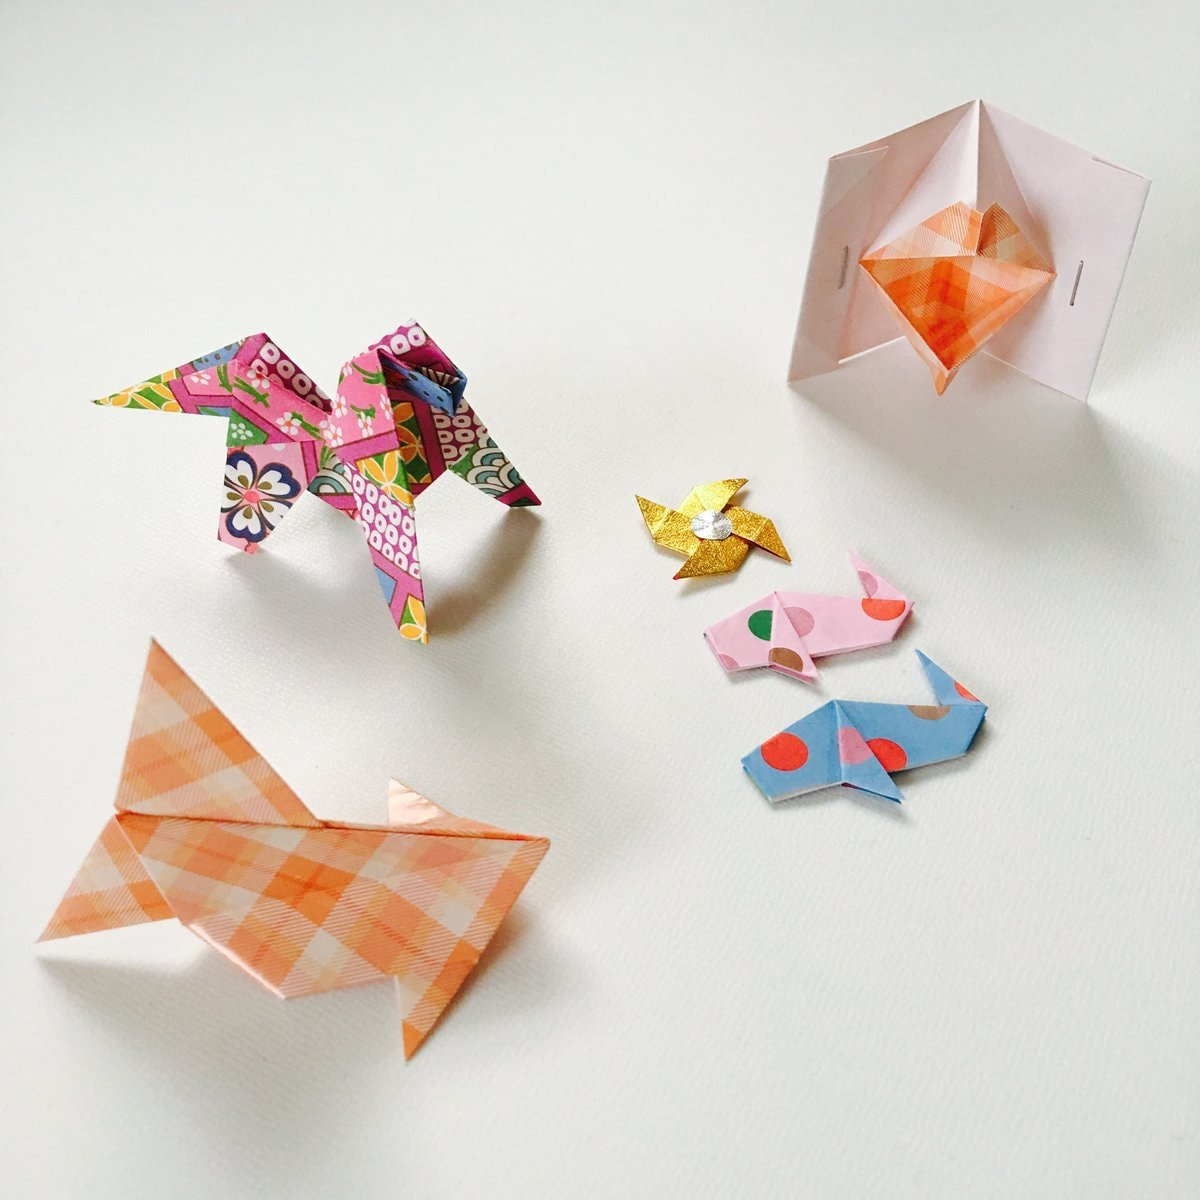 Origami Models from Vending Machine